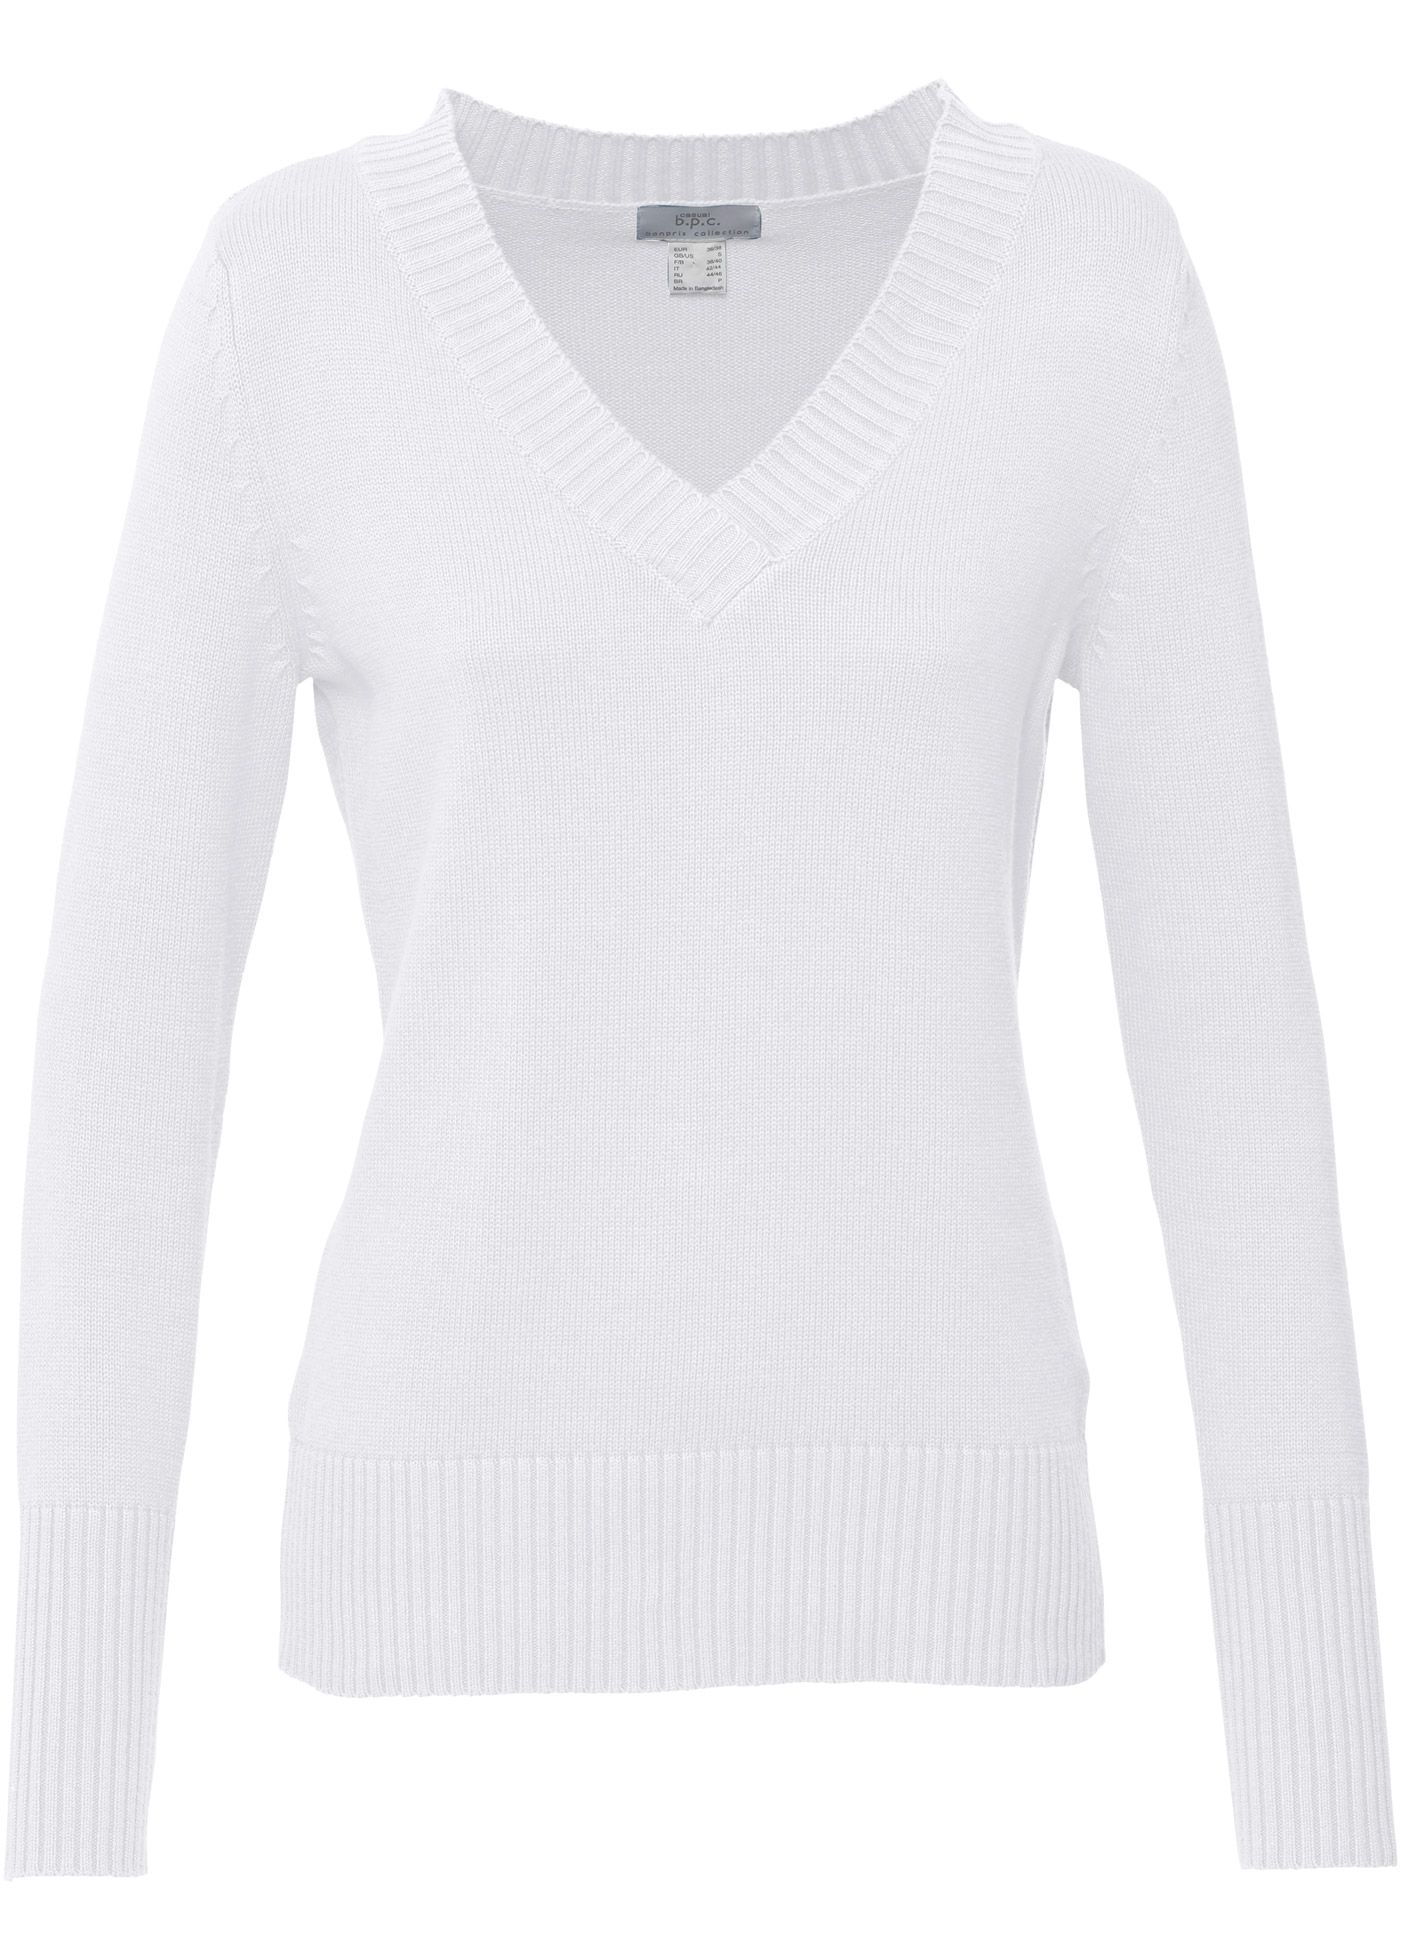 Bonprix knit sweater white cotton | Sweaters Jumpers Hoodies ...